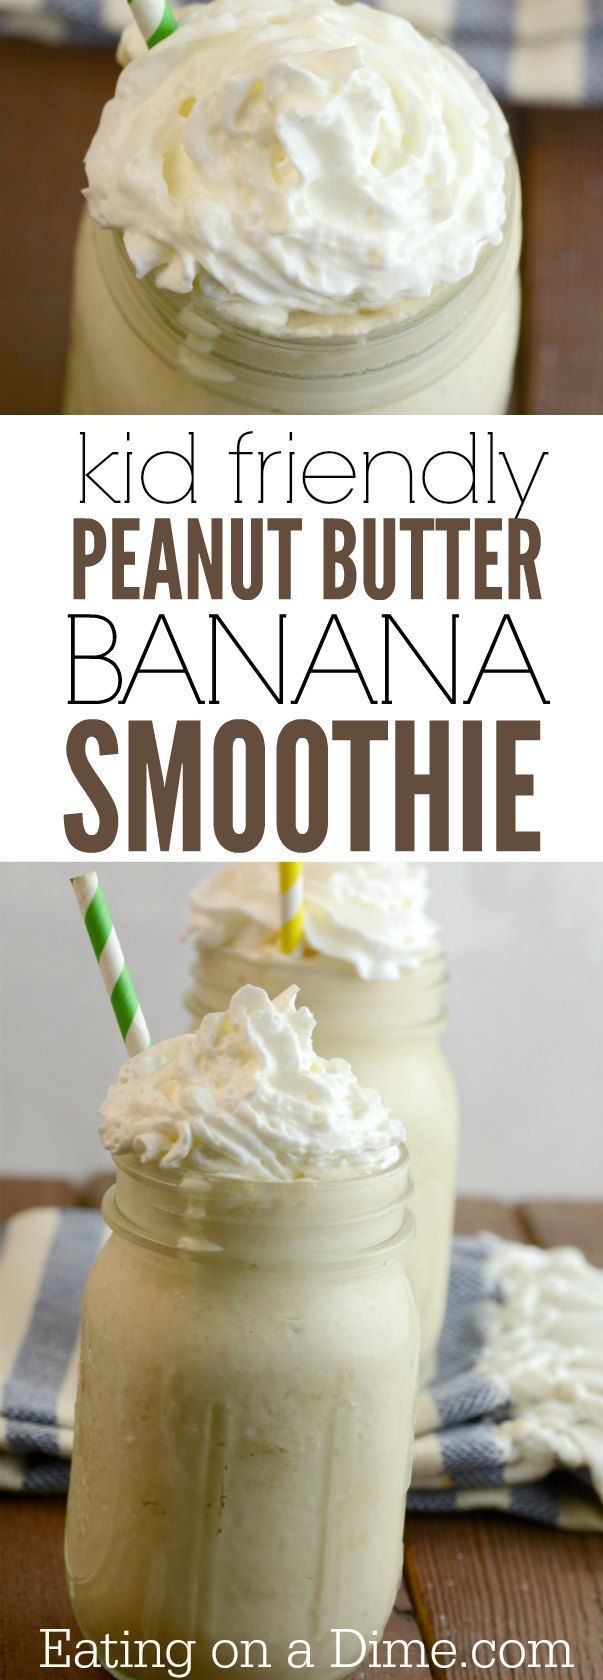 Try this delicious peanut butter banana smoothie recipe. This peanut butter banana almond milk smoothie is delicious and super easy to make. With a few changes and you can also make banana peanut butter greek yogurt smoothies recipe. Either way they are d